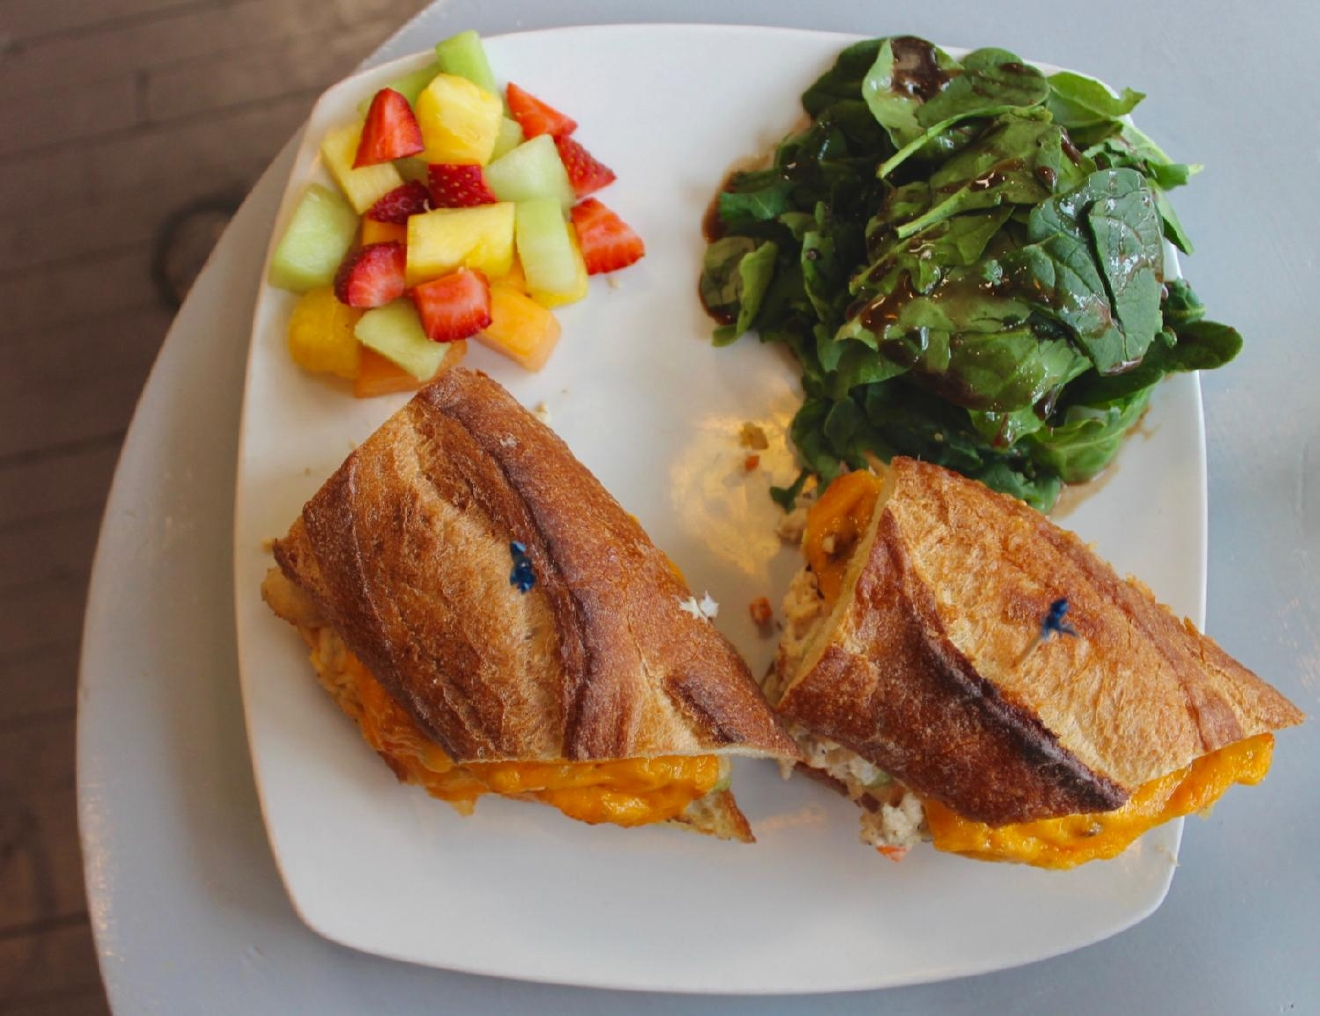 Tuna melt: wild tuna, olive tapenade, and roasted red peppers on a French baguette served with fresh fruit and mixed greens / Image: Rose Brewington // Published: 3.24.17